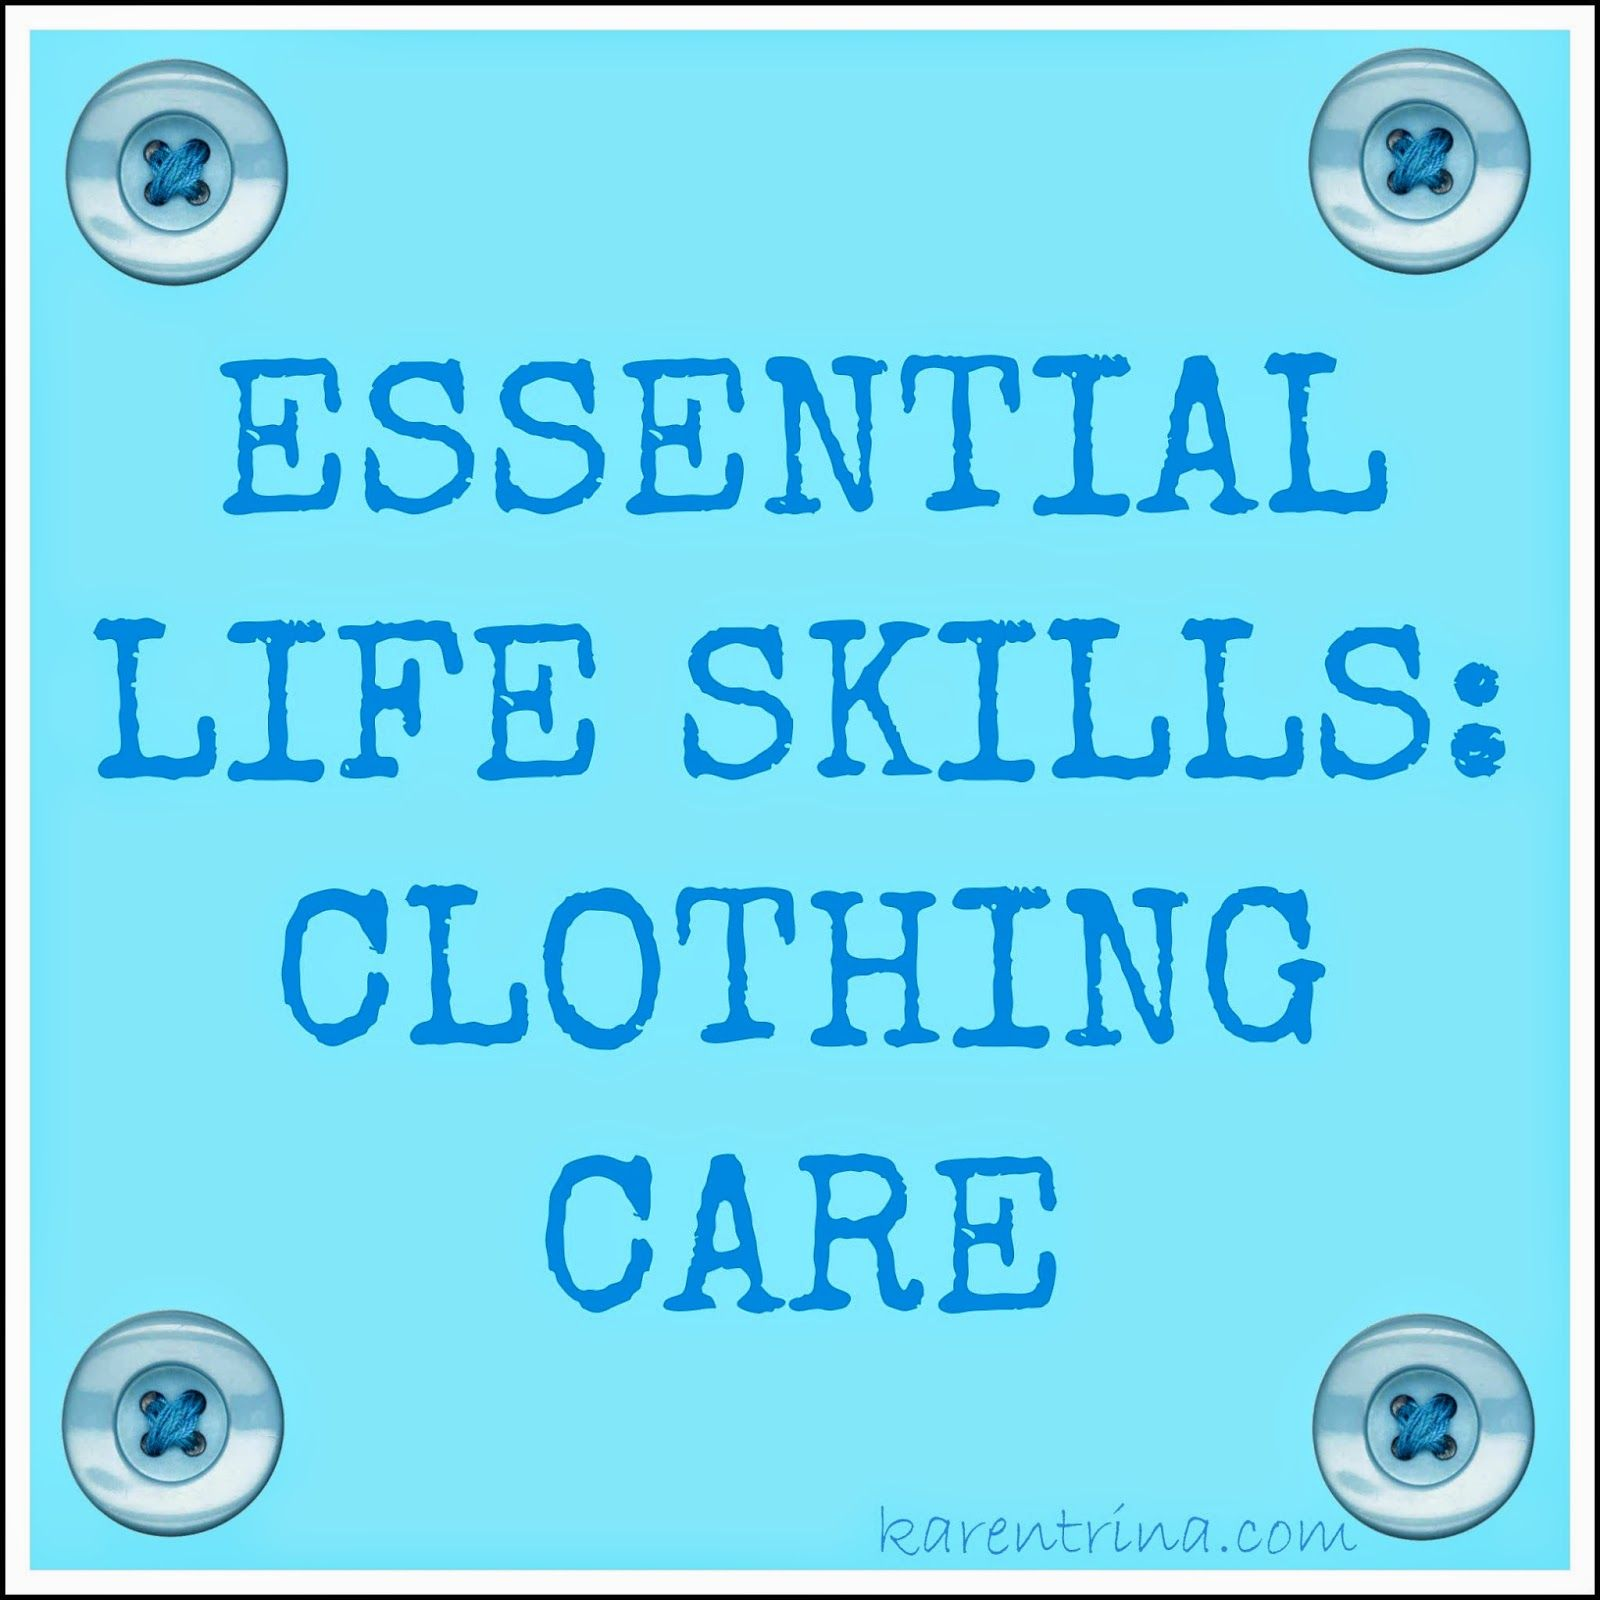 Essential Life Skills Clothing Care With Images